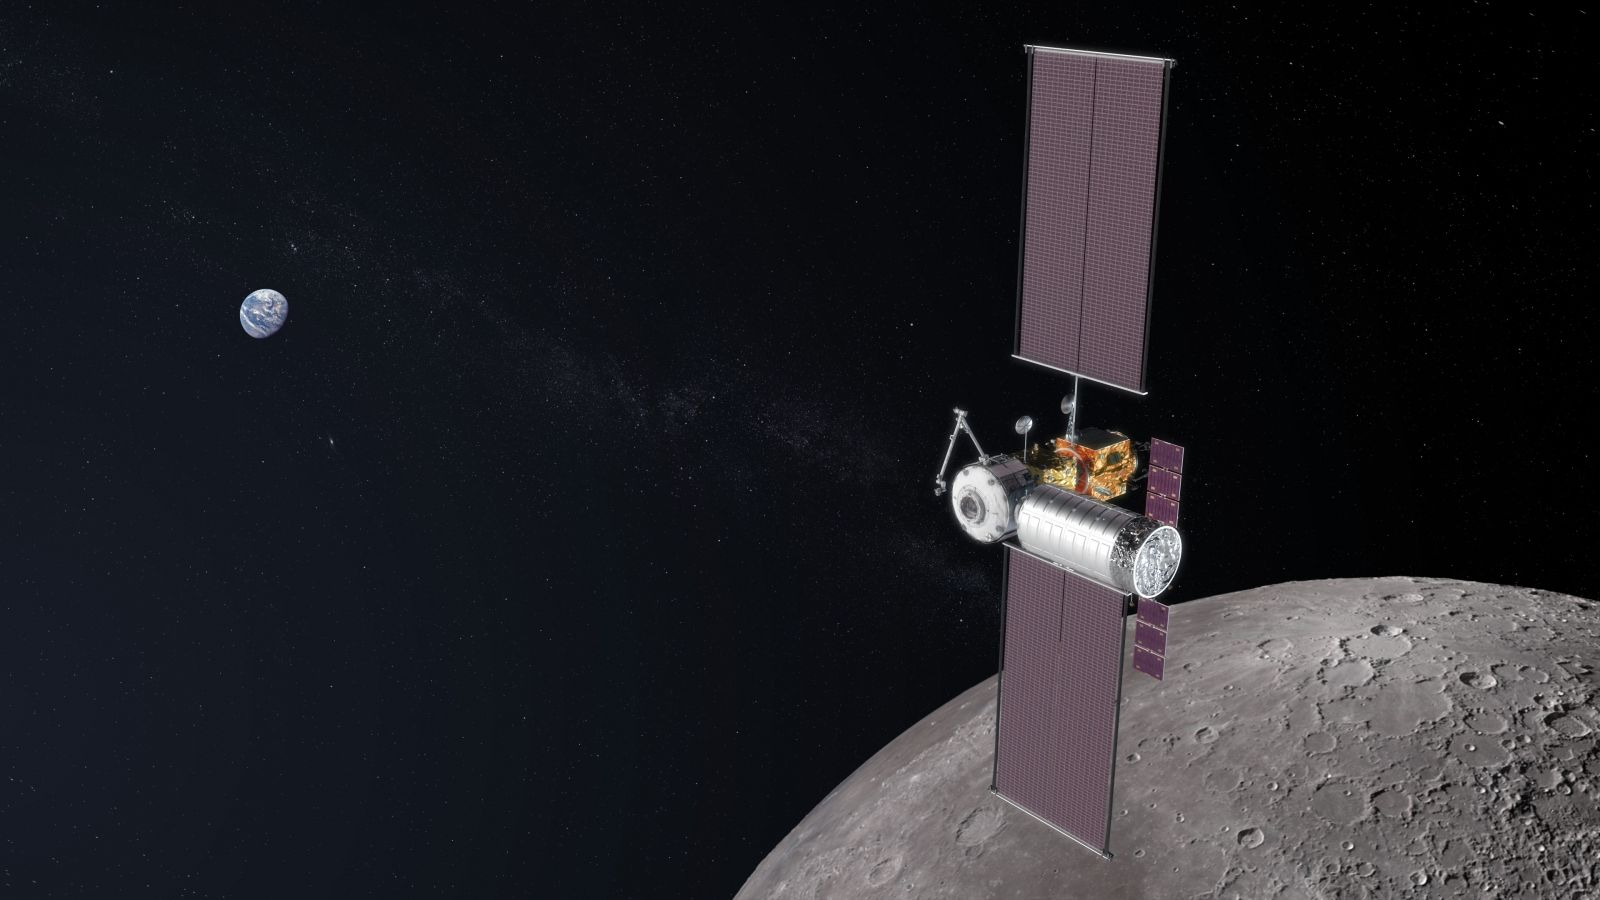 An illustration of a partially completed lunar Gateway with a logistics module attached to it. Image credit: NASA